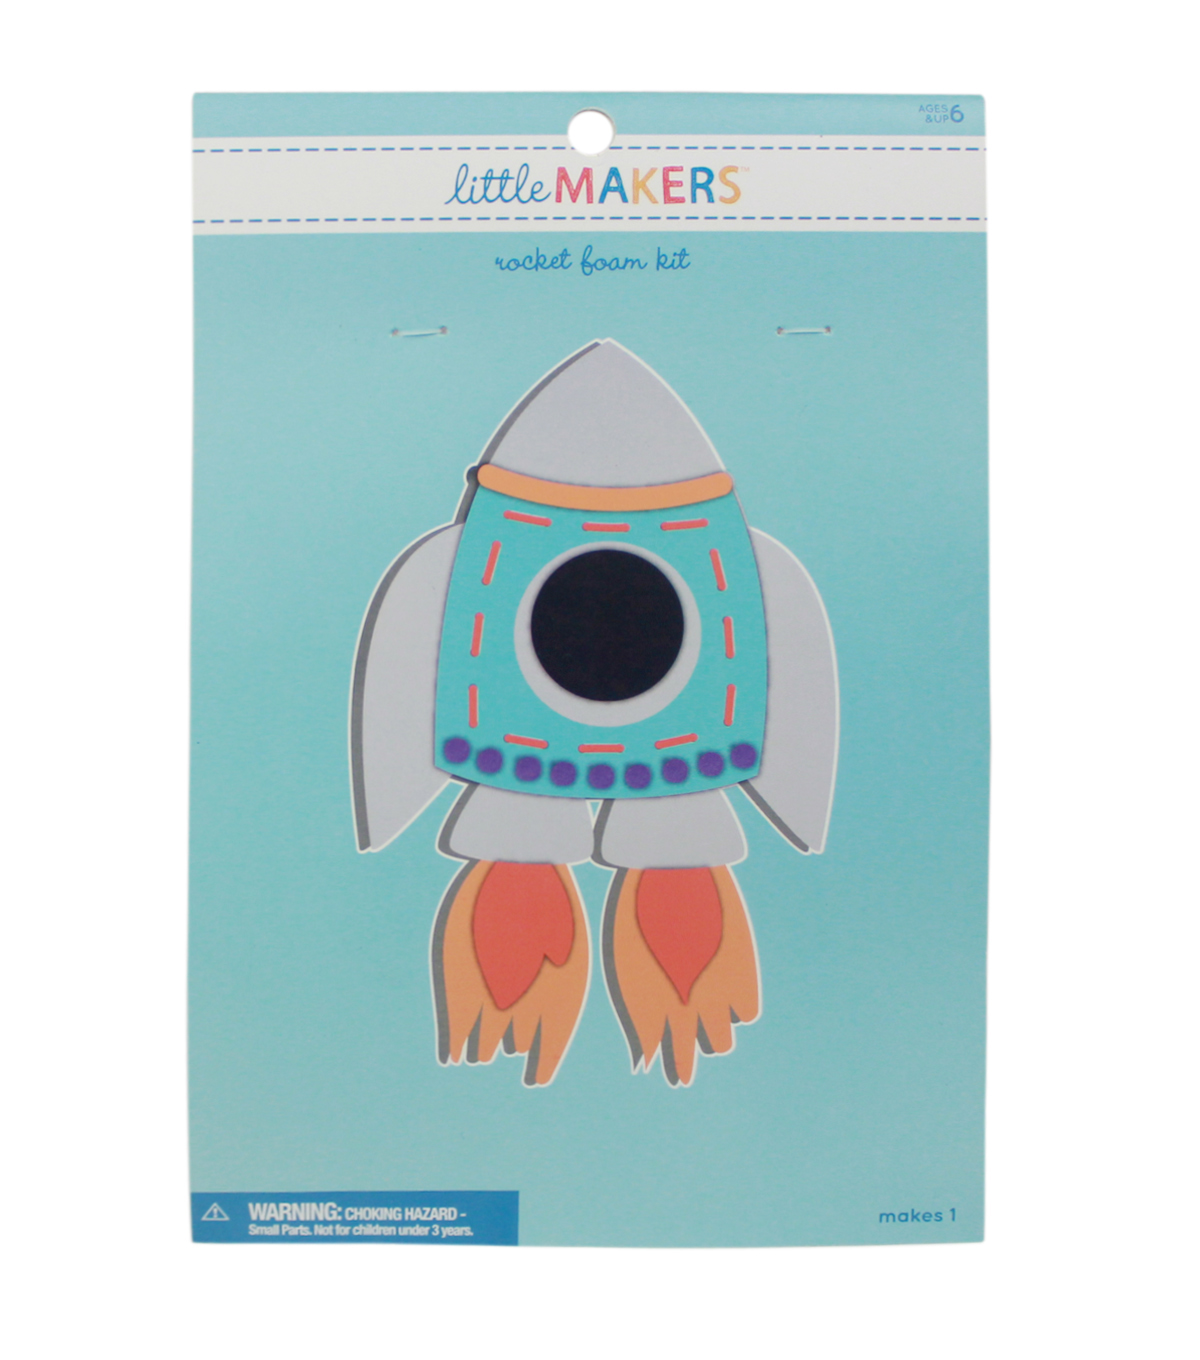 Little Makers Foam Kit-Rocket